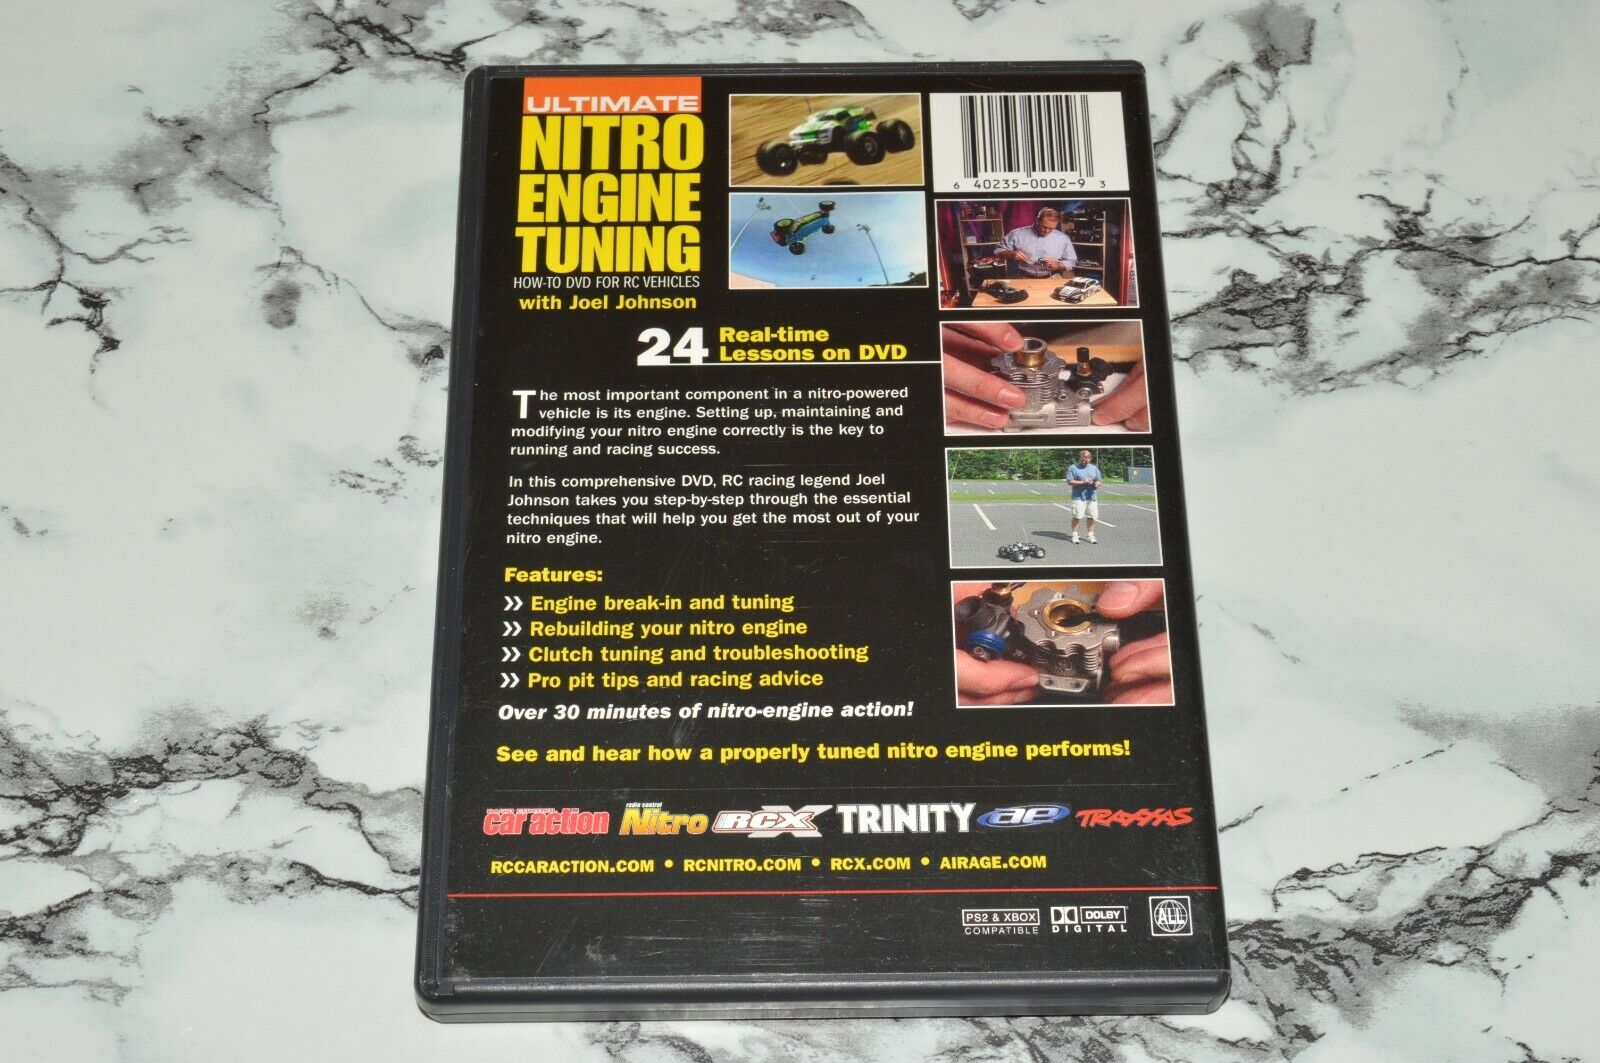 Ultimate Nitro Engine Tuning How-To DVD For RC Vehicles DVD -- Joel Johnson - $12.68